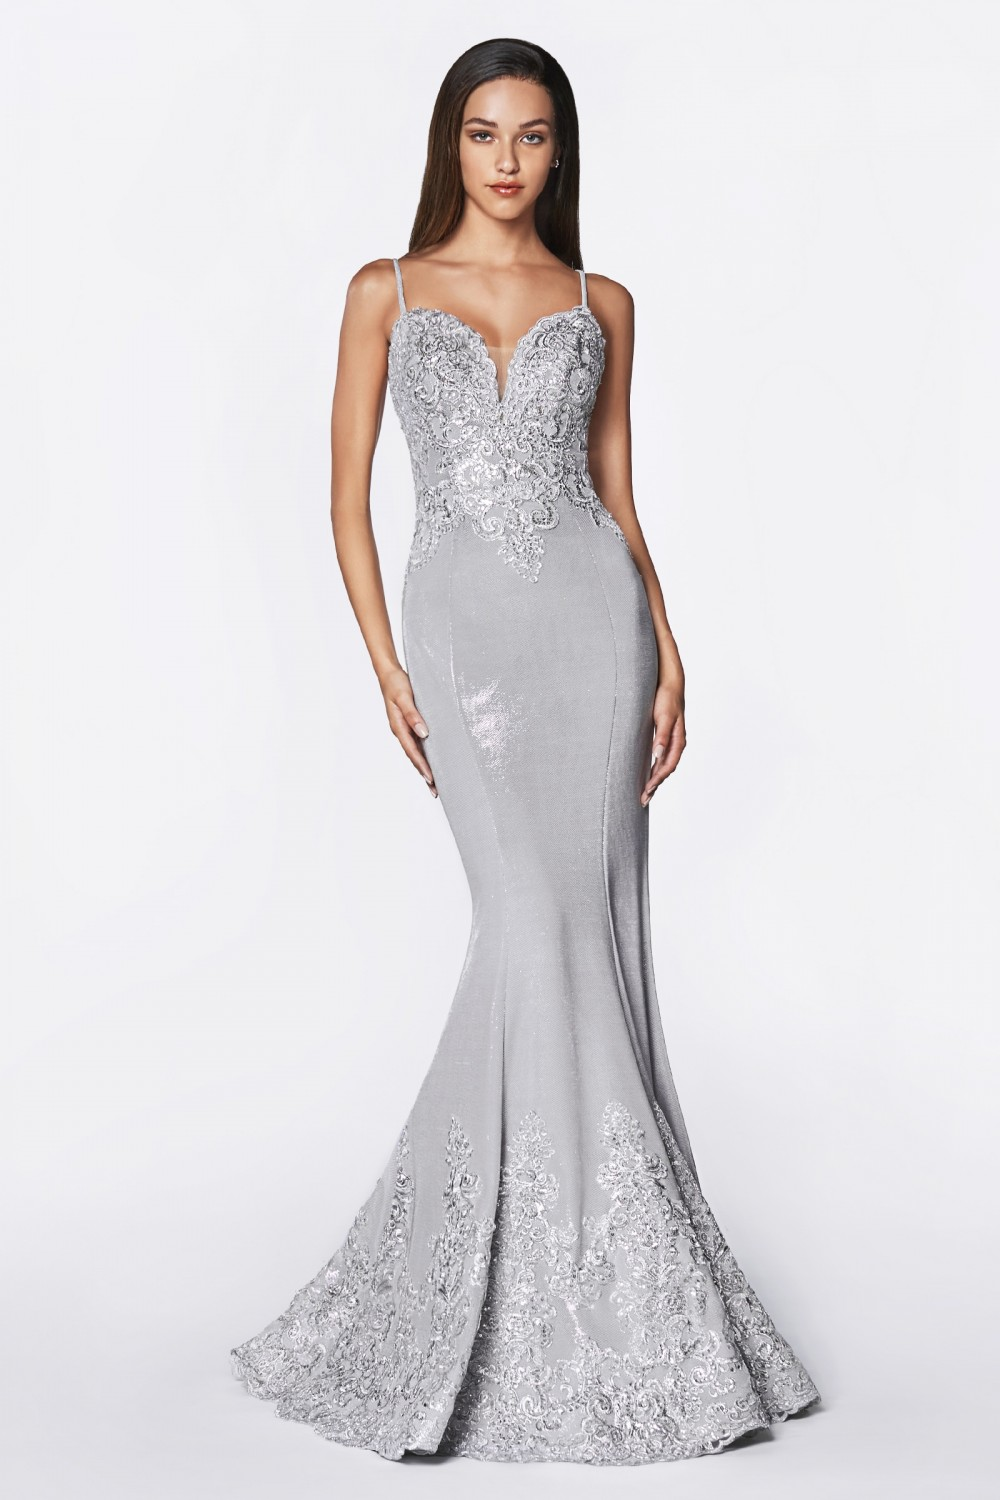 SIlver fitted metallic gown with lace appliqued bodice and scallop lace hem.